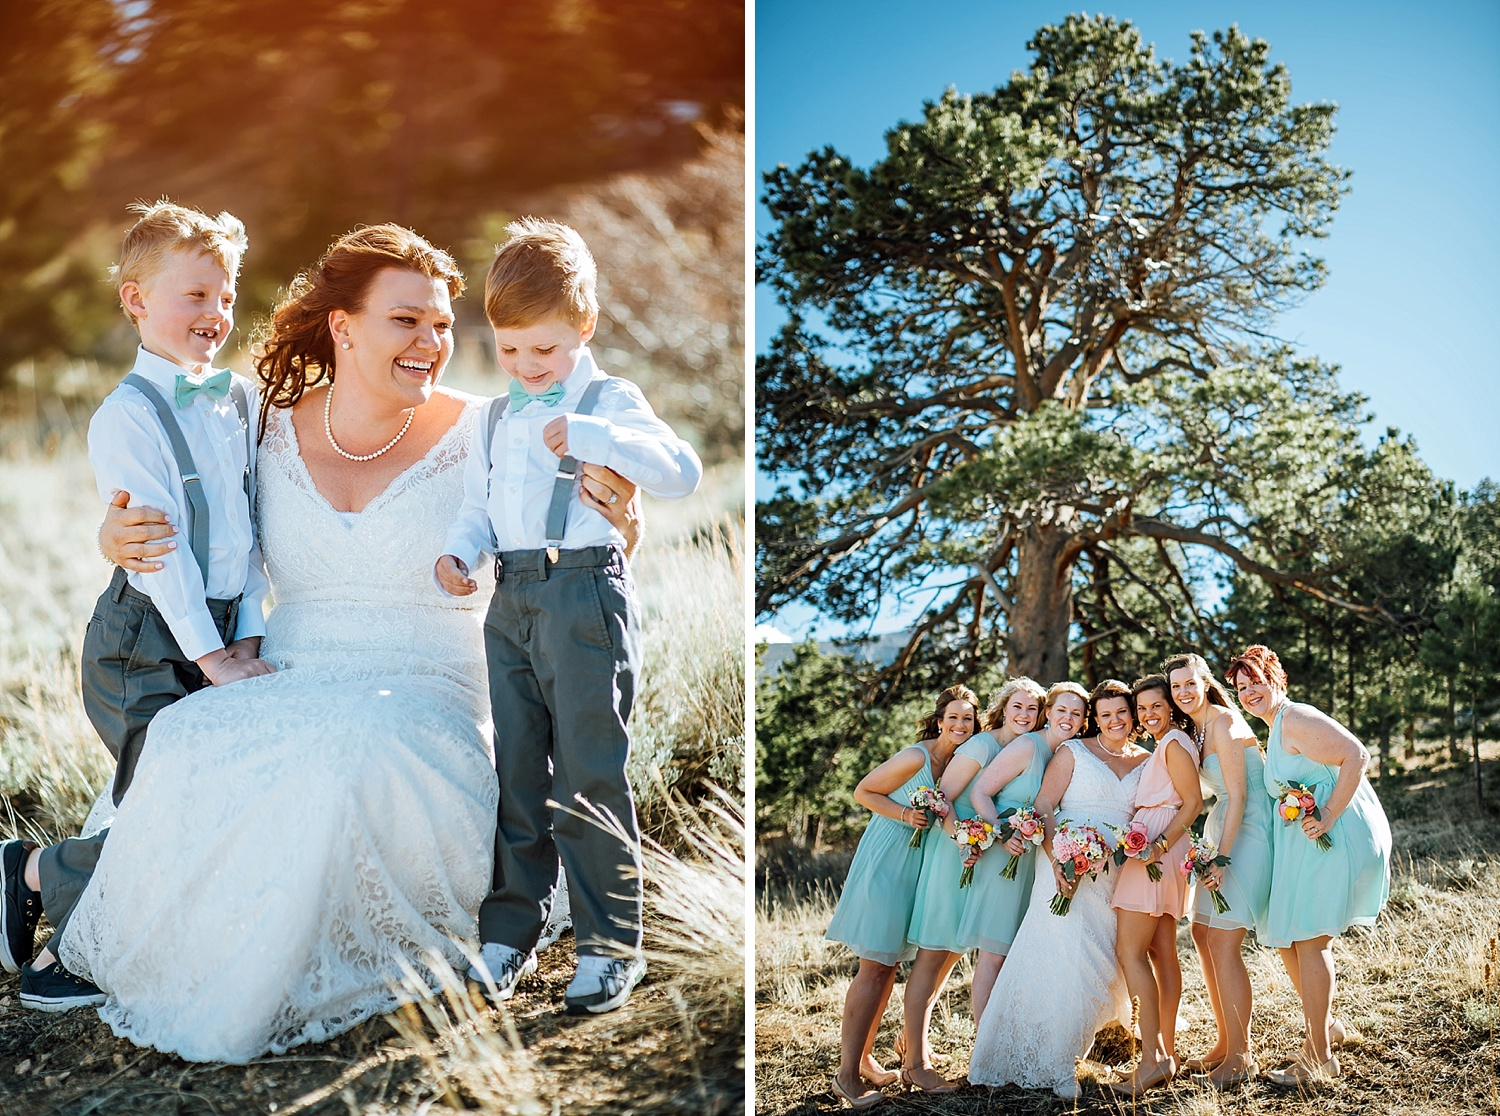 The pink, blush, coral, teal, aqua and tiffanyblue wedding color scheme is so unique! It's perfect for an adventurous Colorado wedding!Photo by Maddie Mae Photography